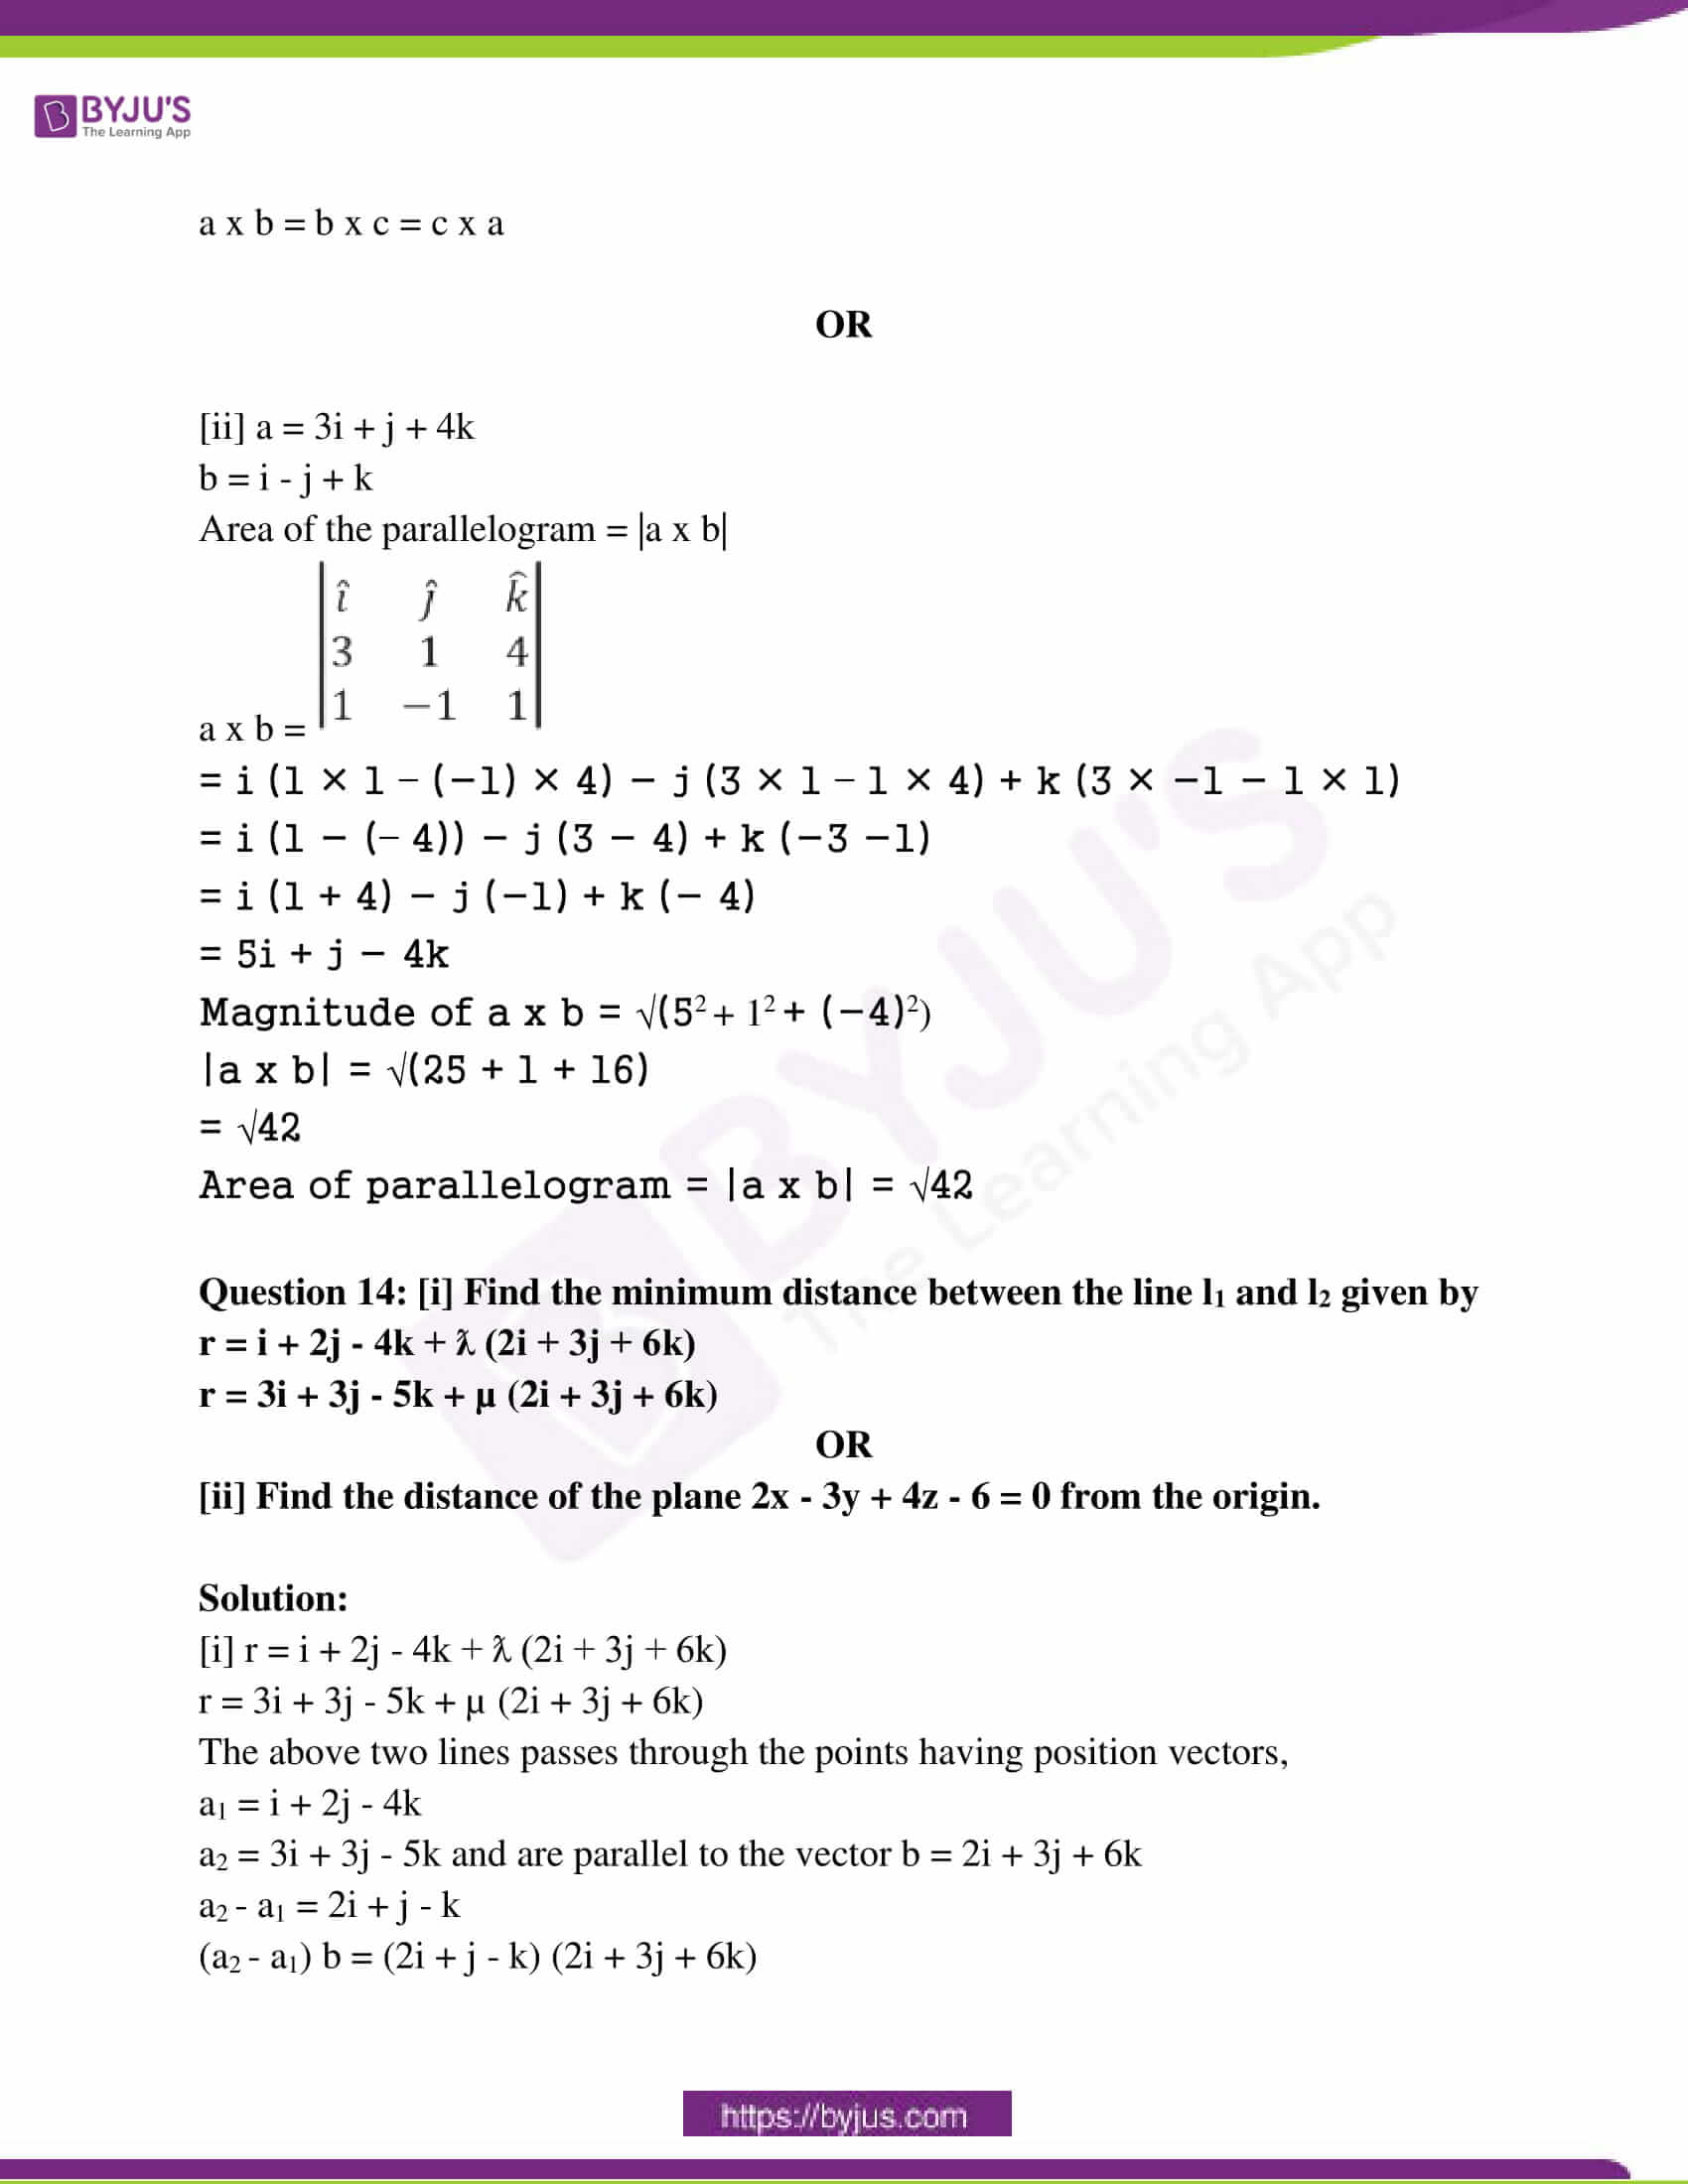 mp board class 12 questions and answers maths 2019 15